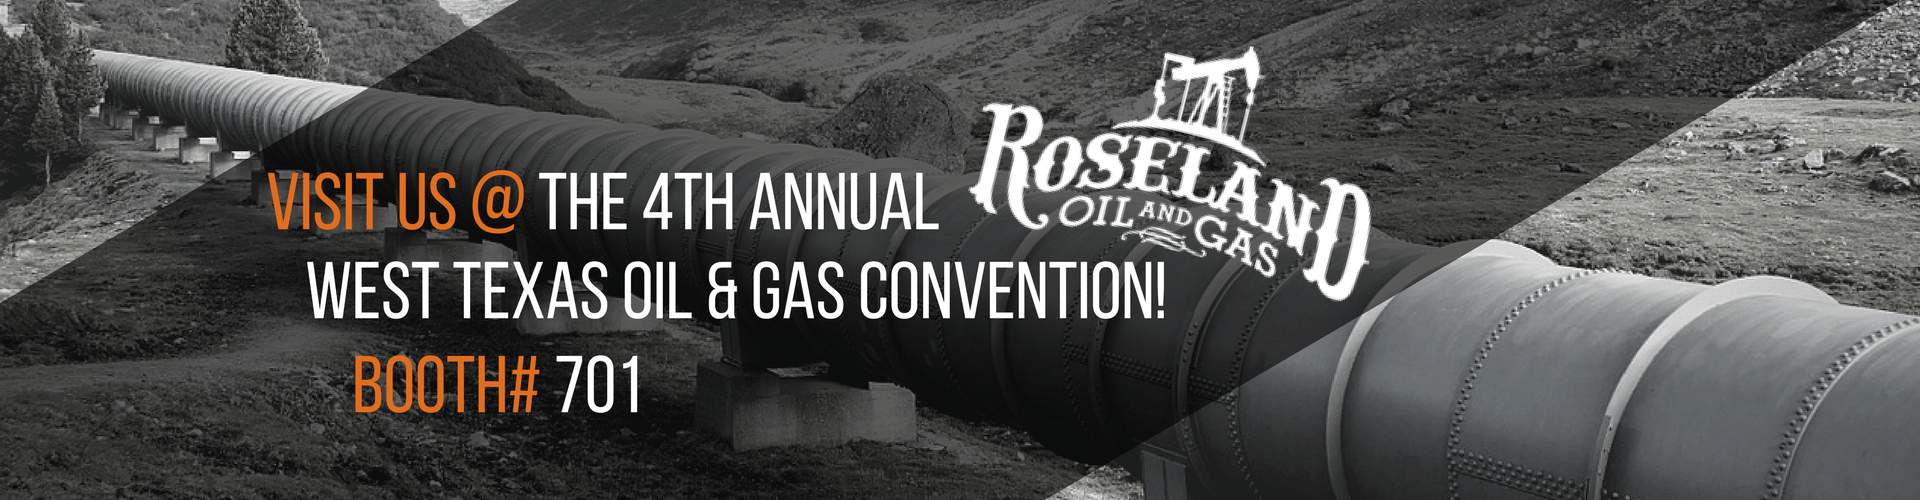 4th Annual West Texas Oil & Gas Conference